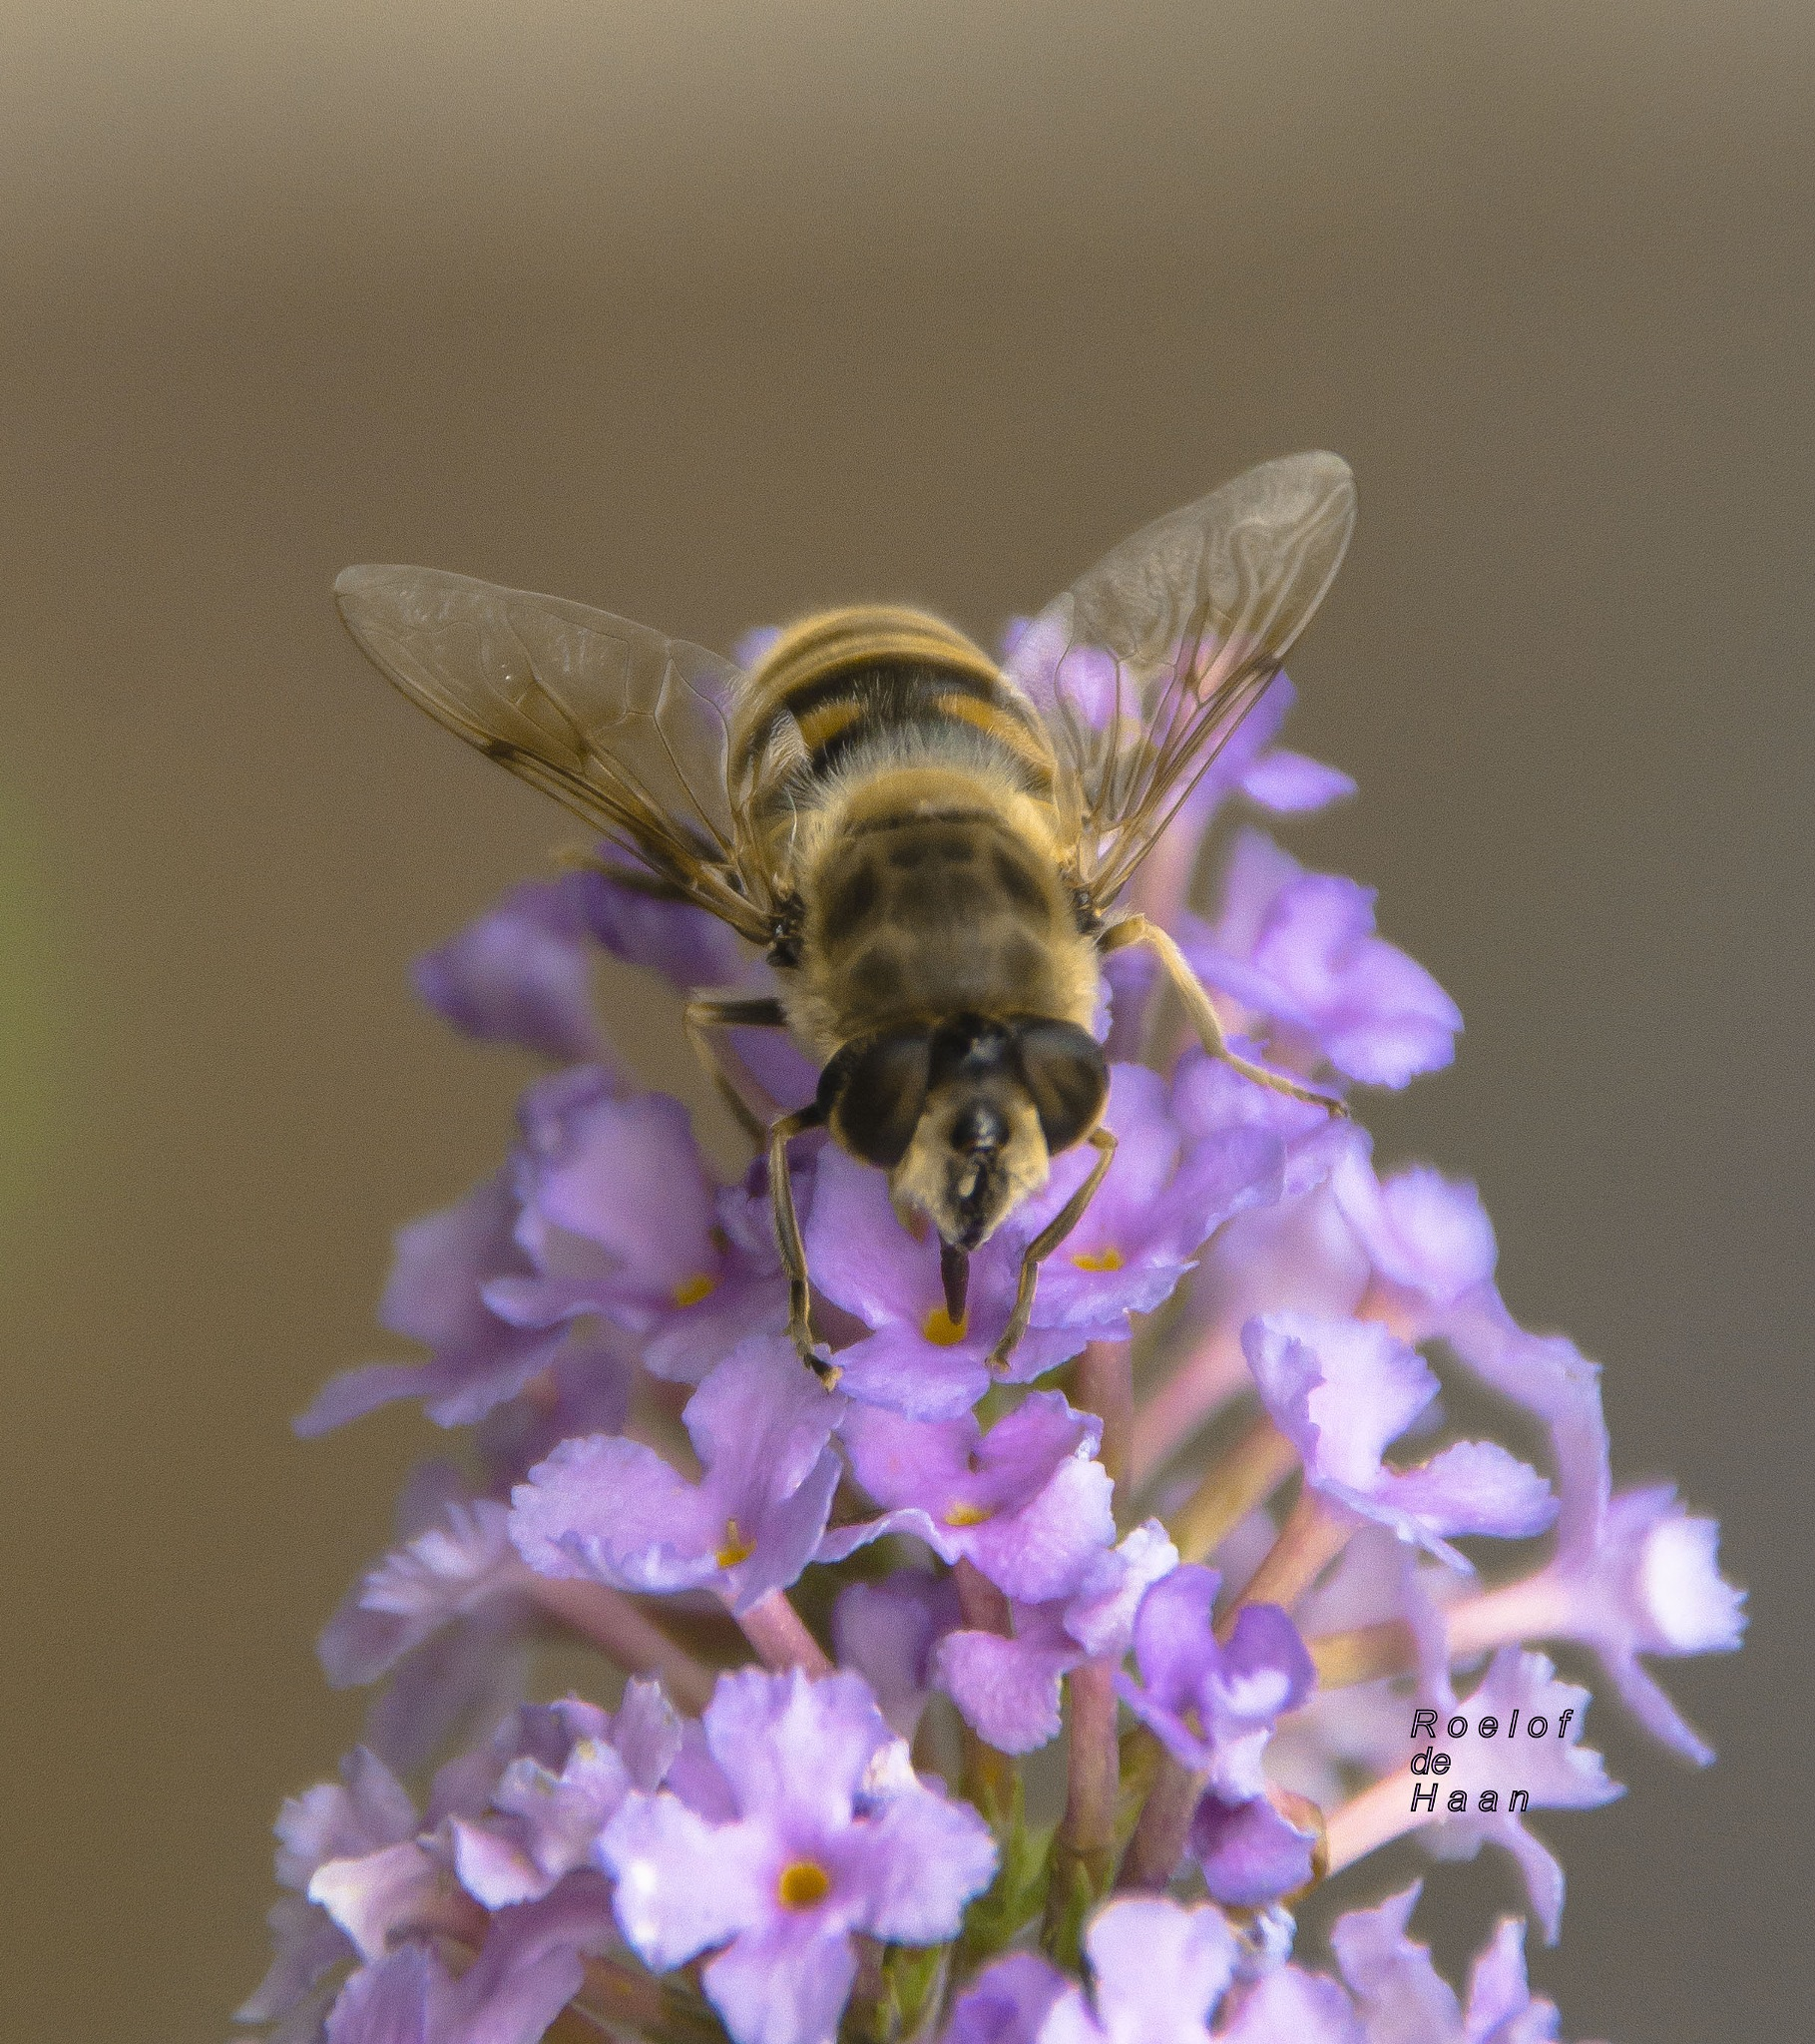 Hoverfly searching for nectar by Roelof de Haan